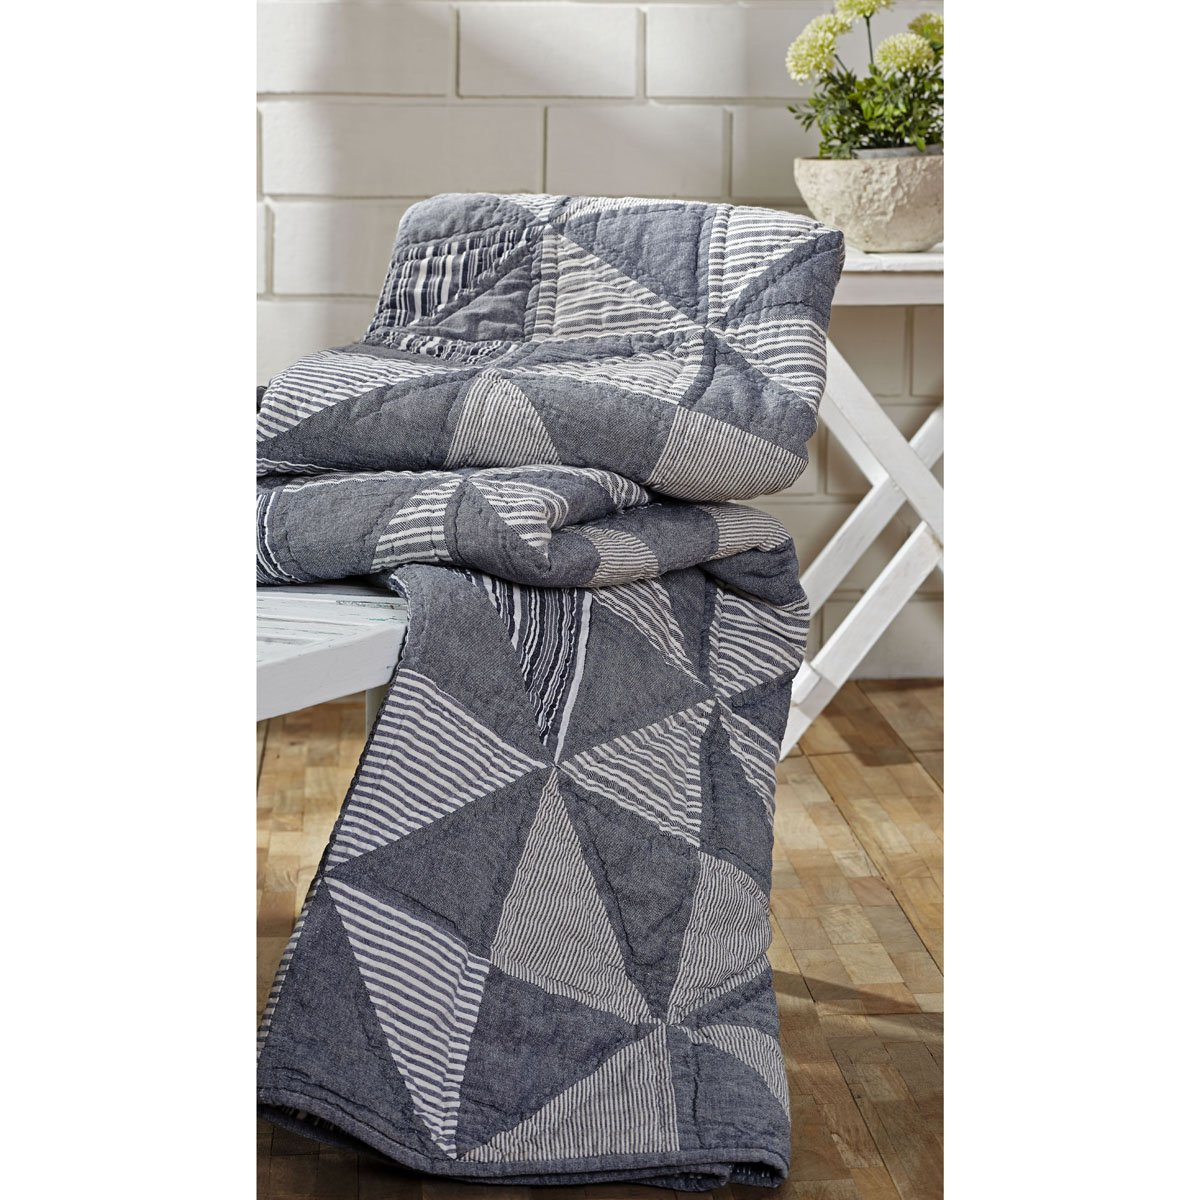 VHC Brands Huron 4'7'' x 5'10'' Quilted Throw Blanket in Blue